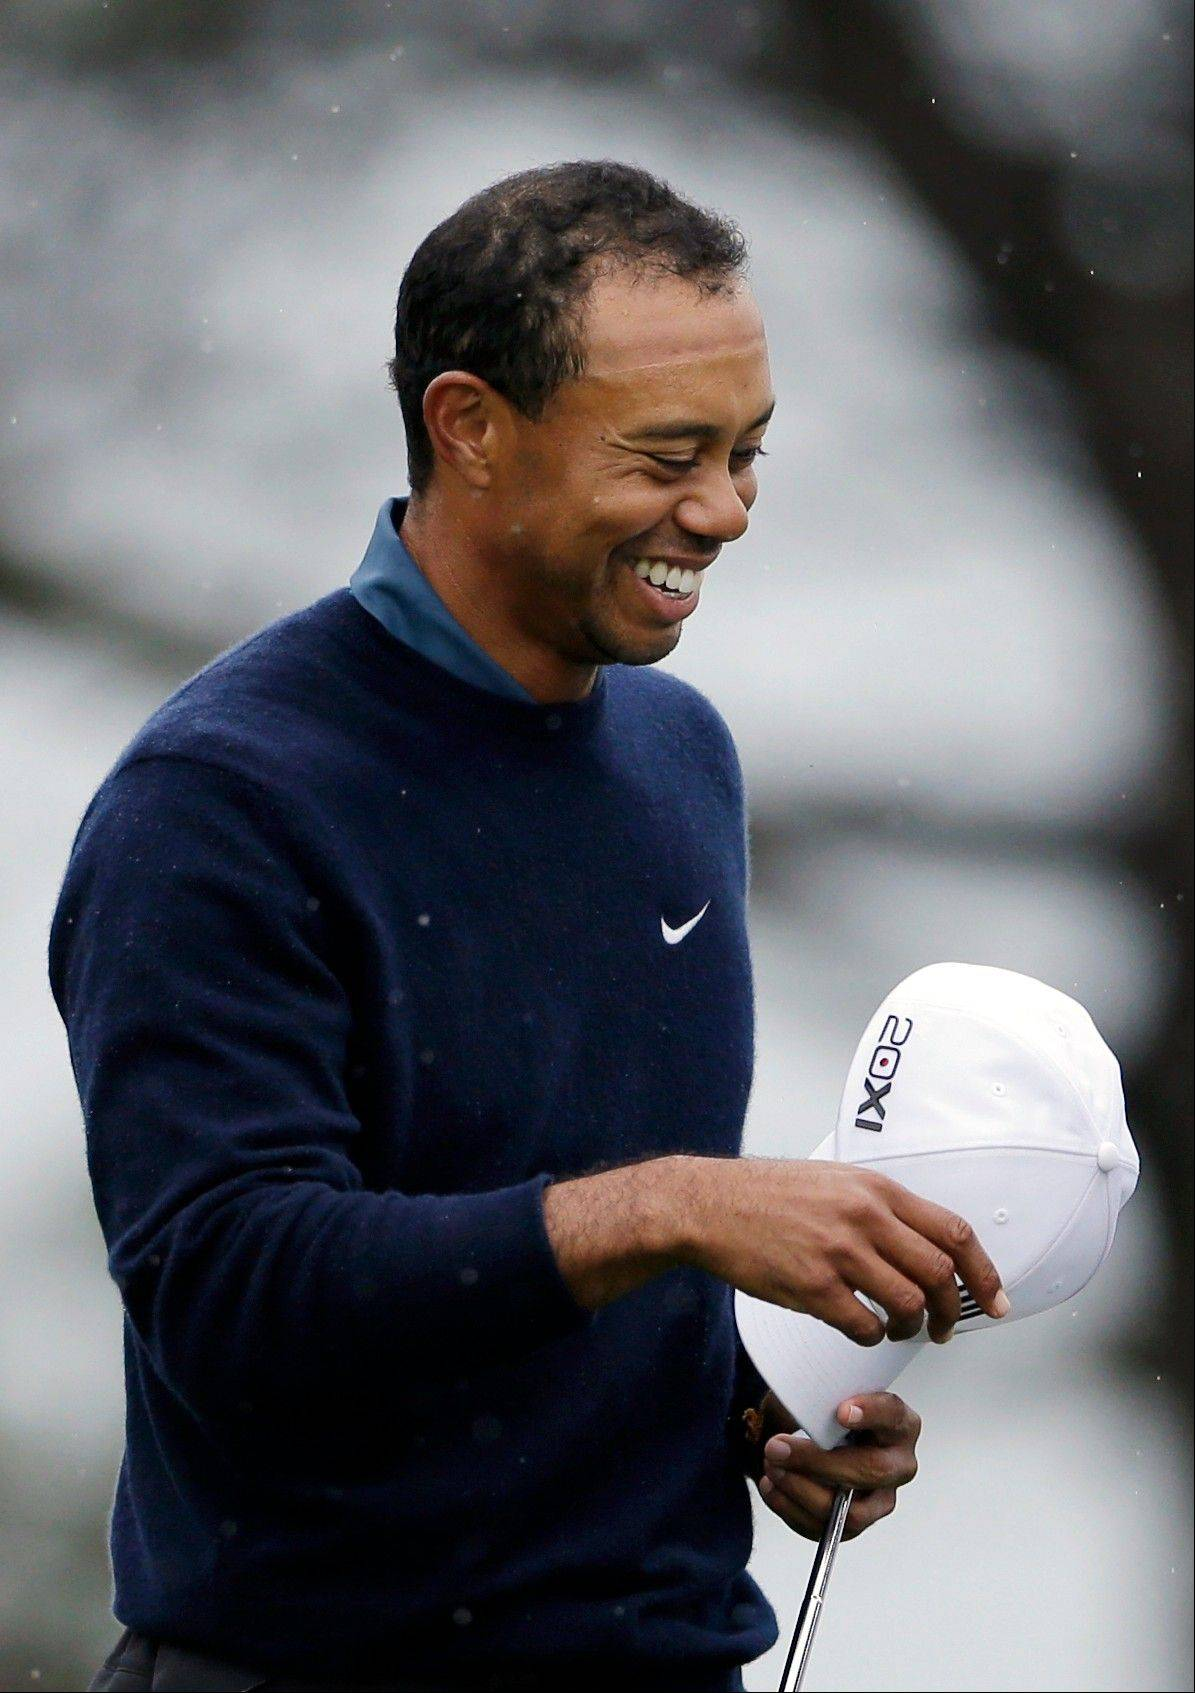 Tiger Woods smiles as he waits to hit his second shot on the seventh hole of the north course at the Torrey Pines Golf Course during the second round of the Farmers Insurance Open golf tournament Friday, Jan. 25, 2013, in San Diego.